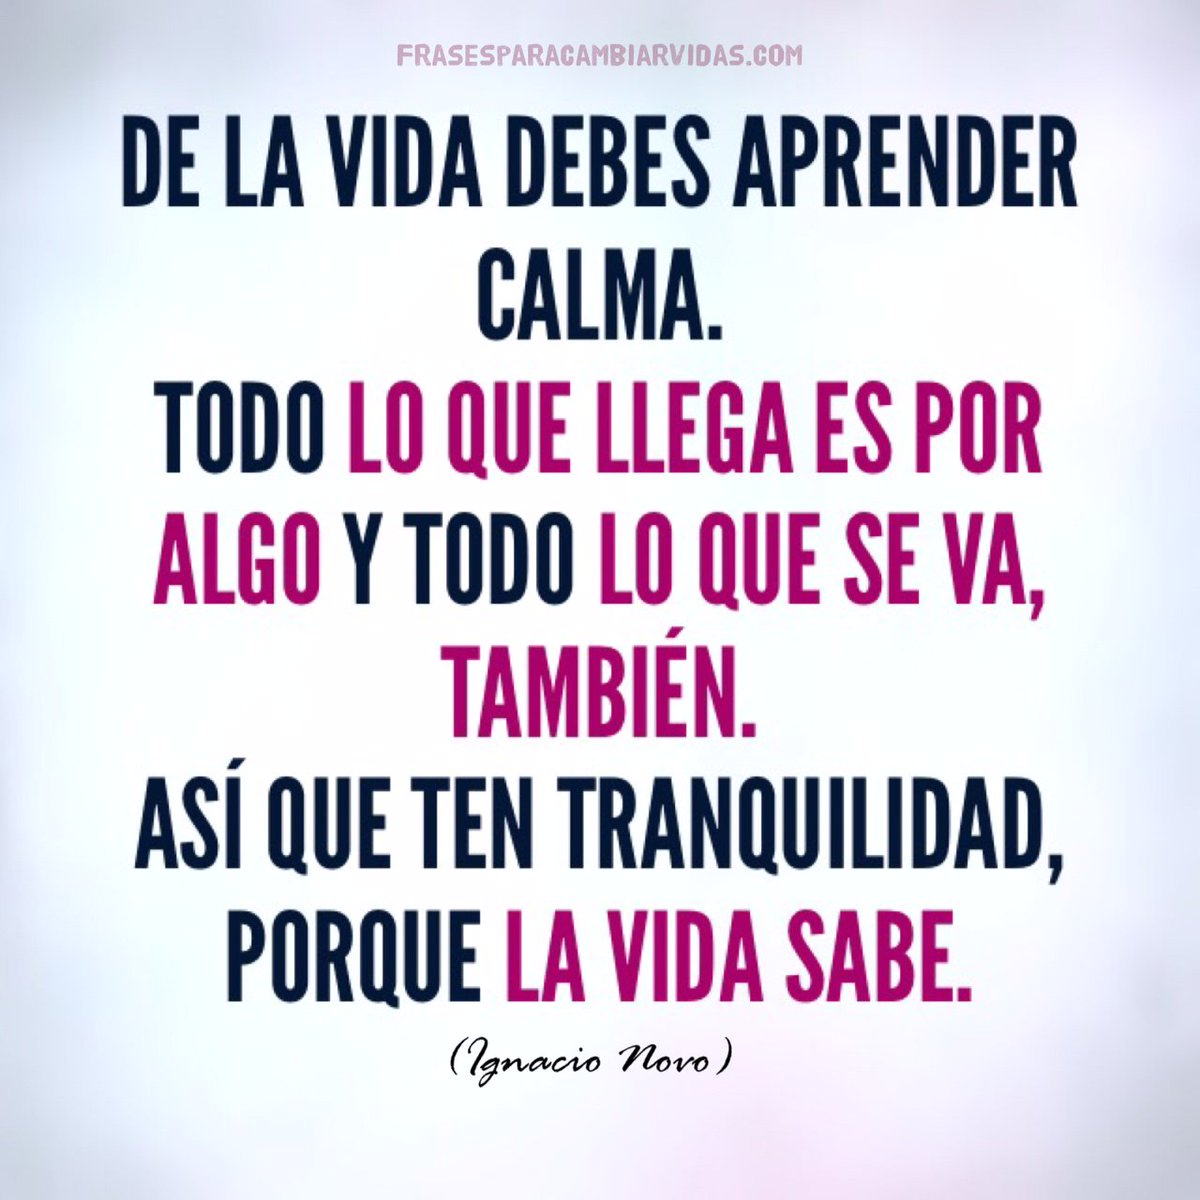 Frases para cambiar on Twitter: